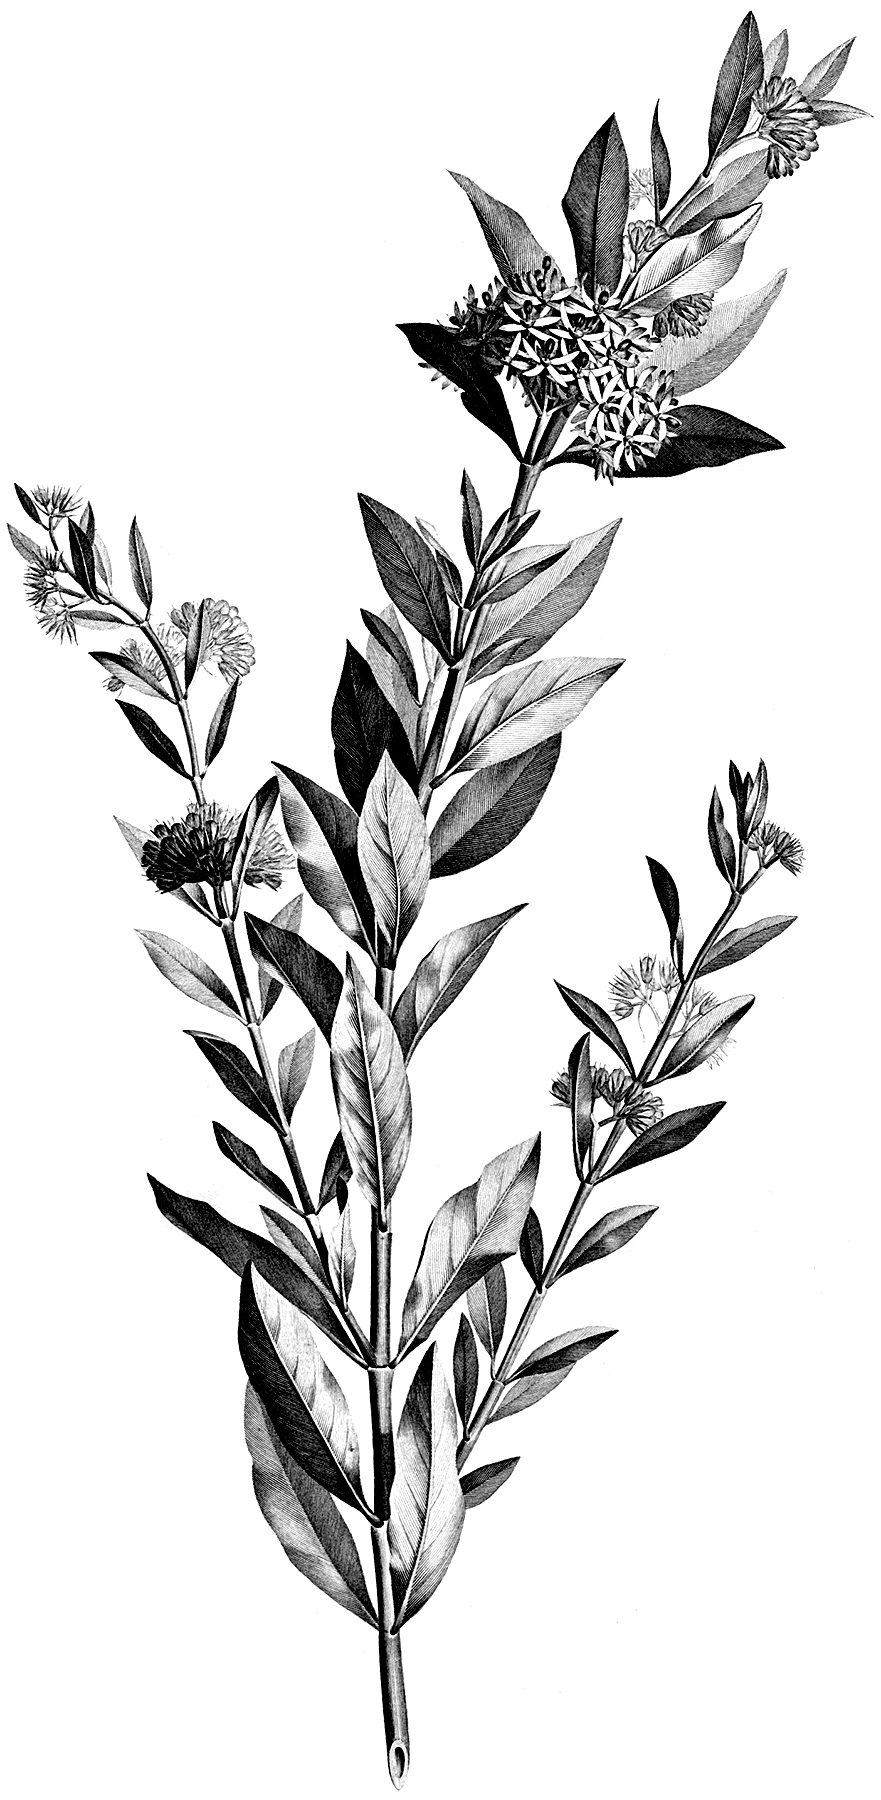 4 Black And White Botanical Stems Images The Graphics Fairy